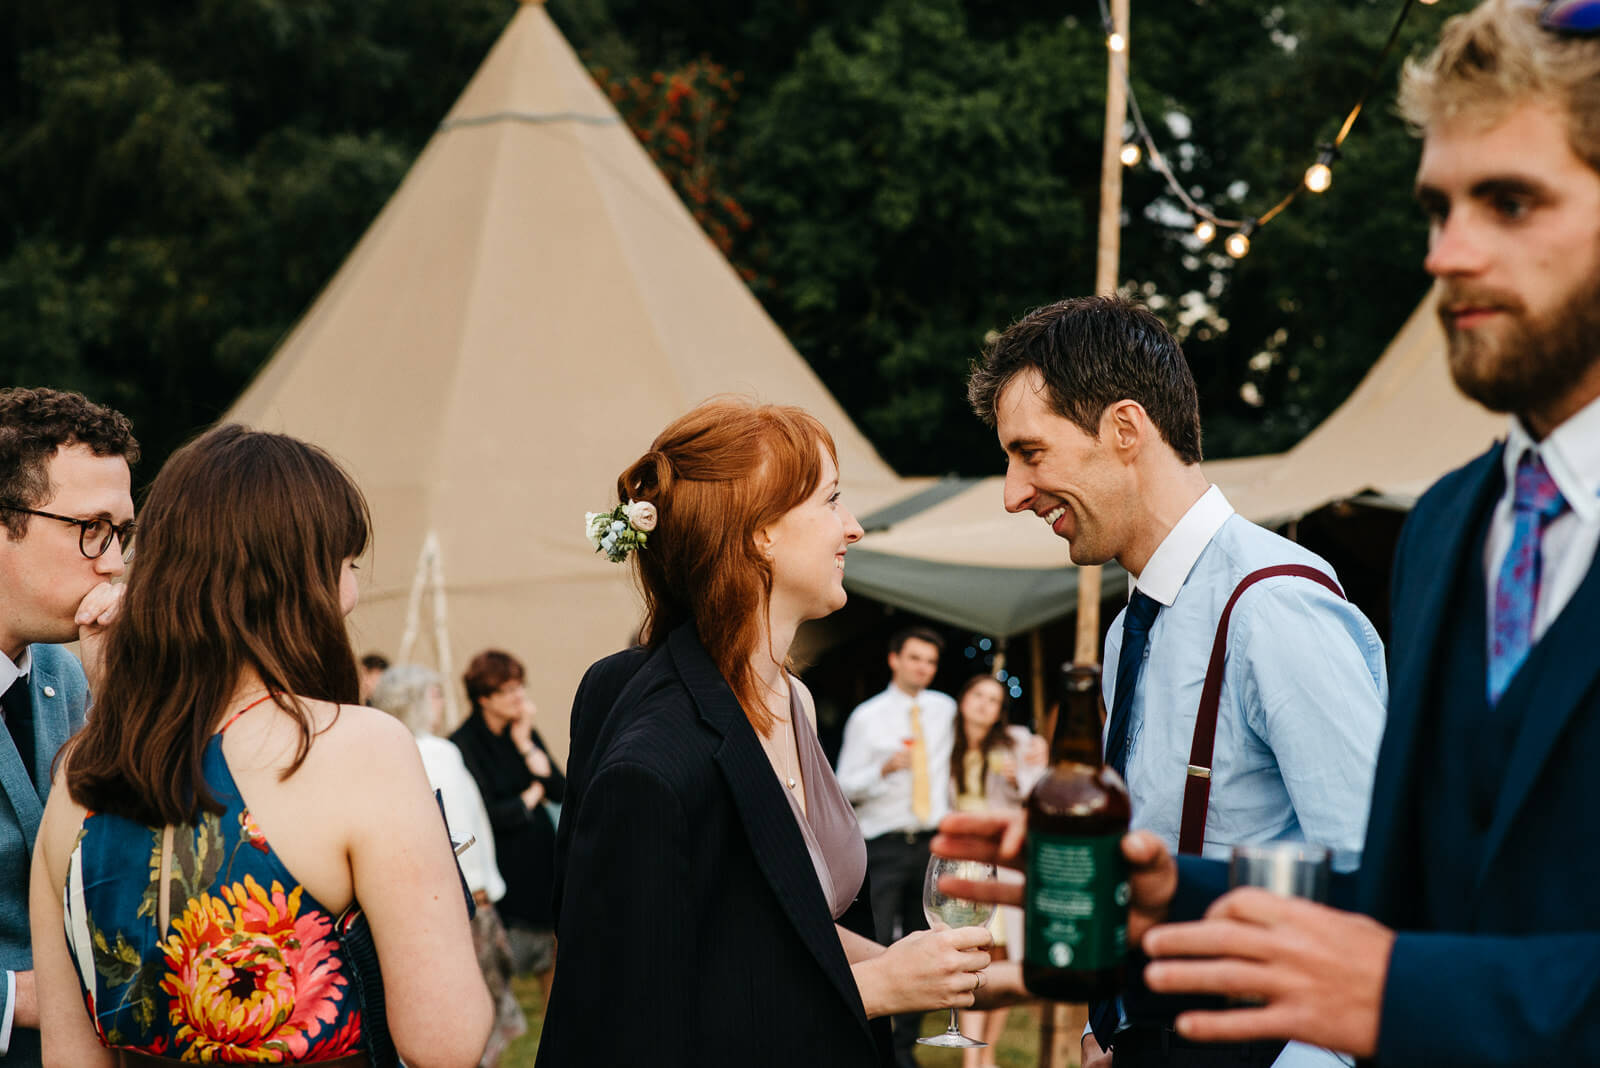 Guests laughing at Shropshire festival wedding